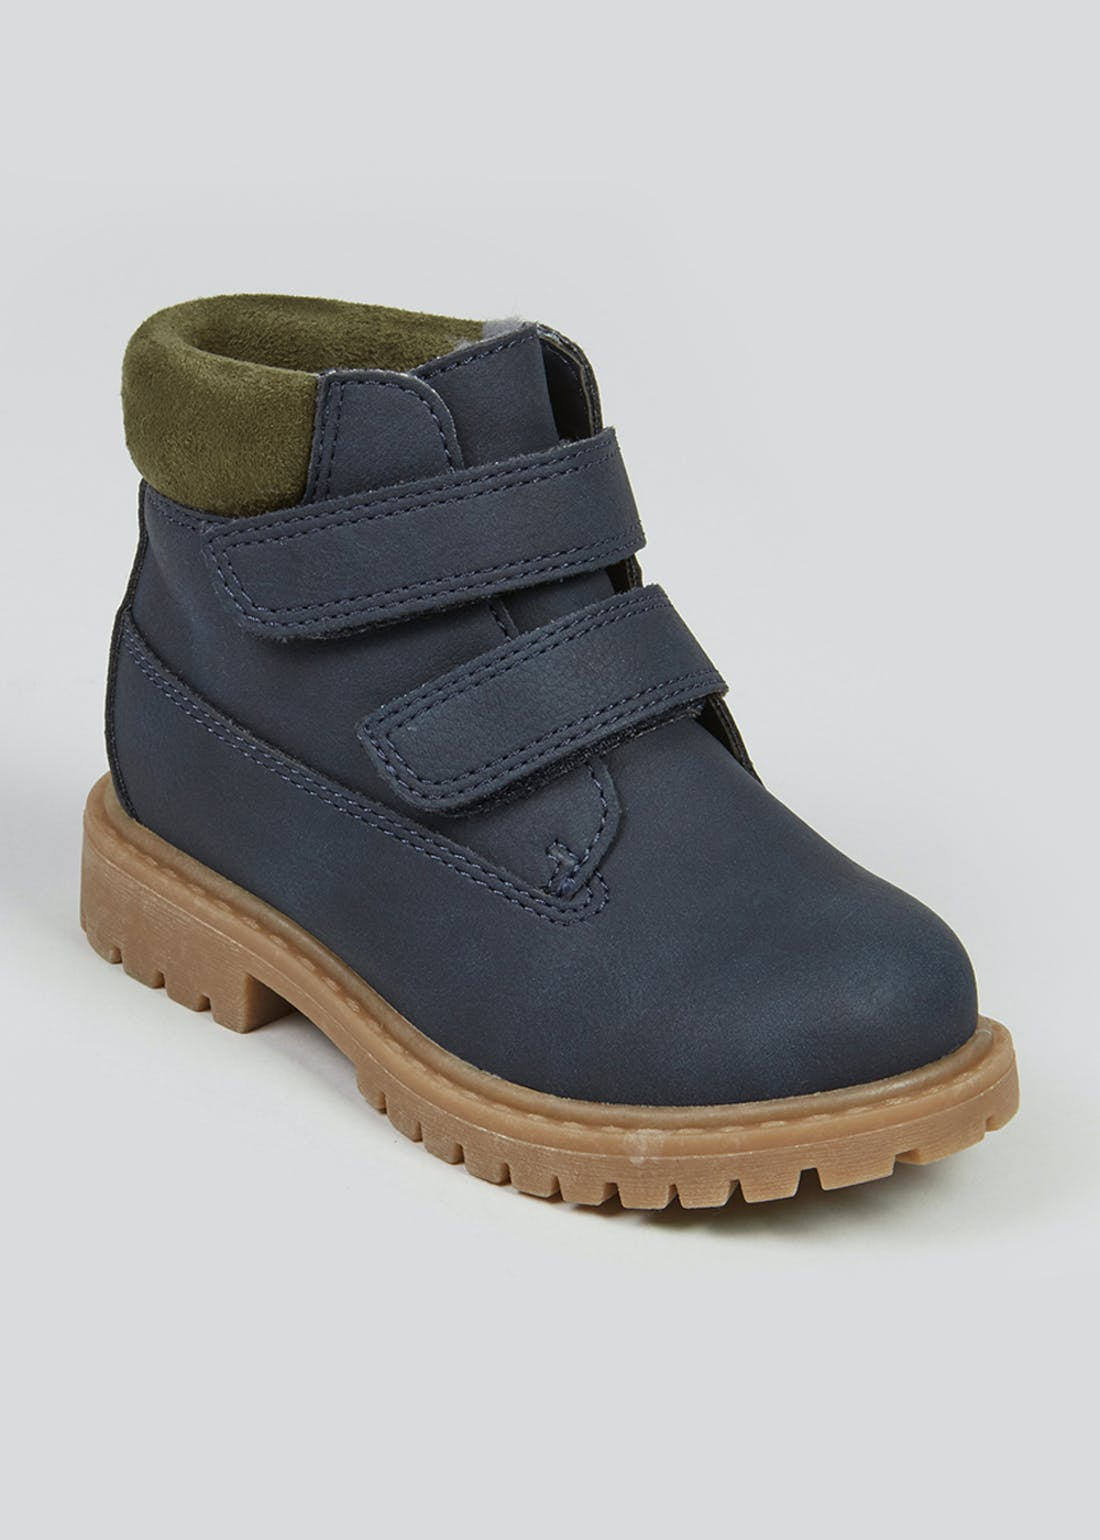 Boys Navy Hiker Boots (Younger 4-12)